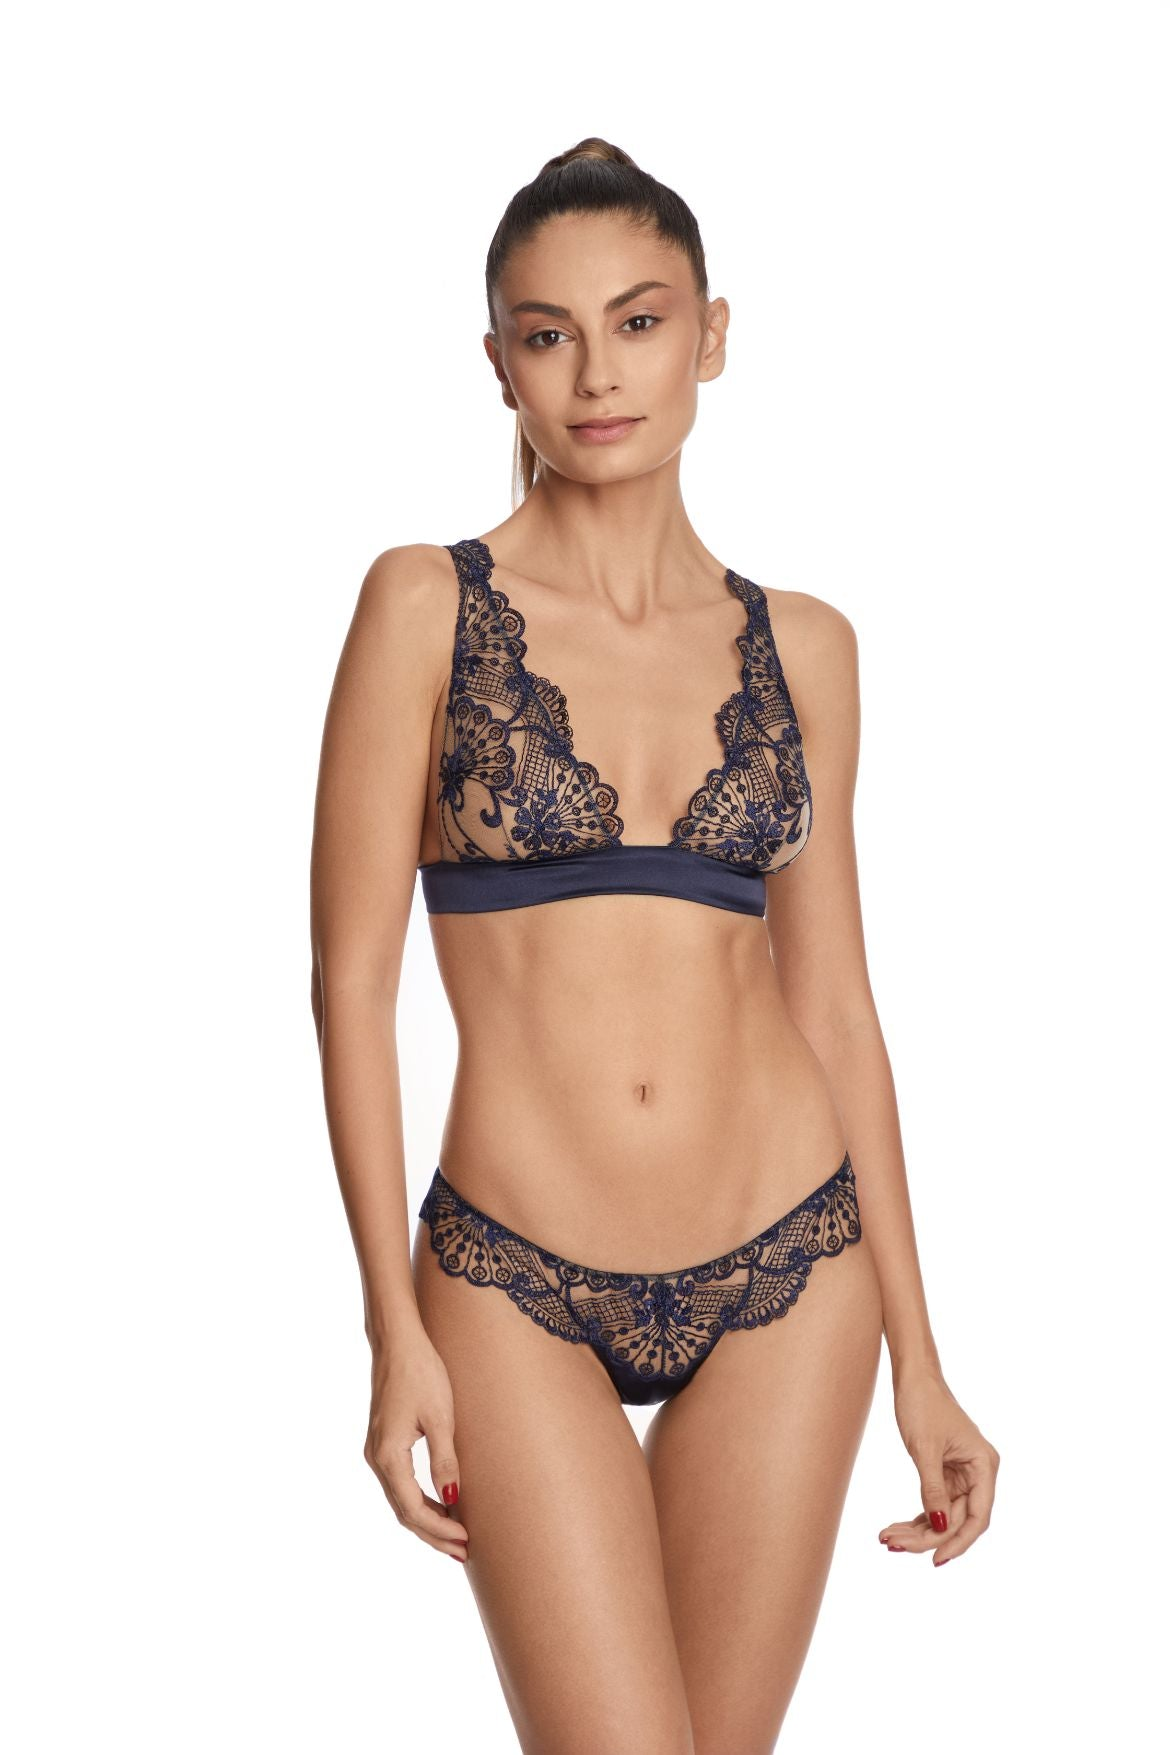 I.D. Sarrieri embroidered tulle soft cup triangle bra and thong in navy